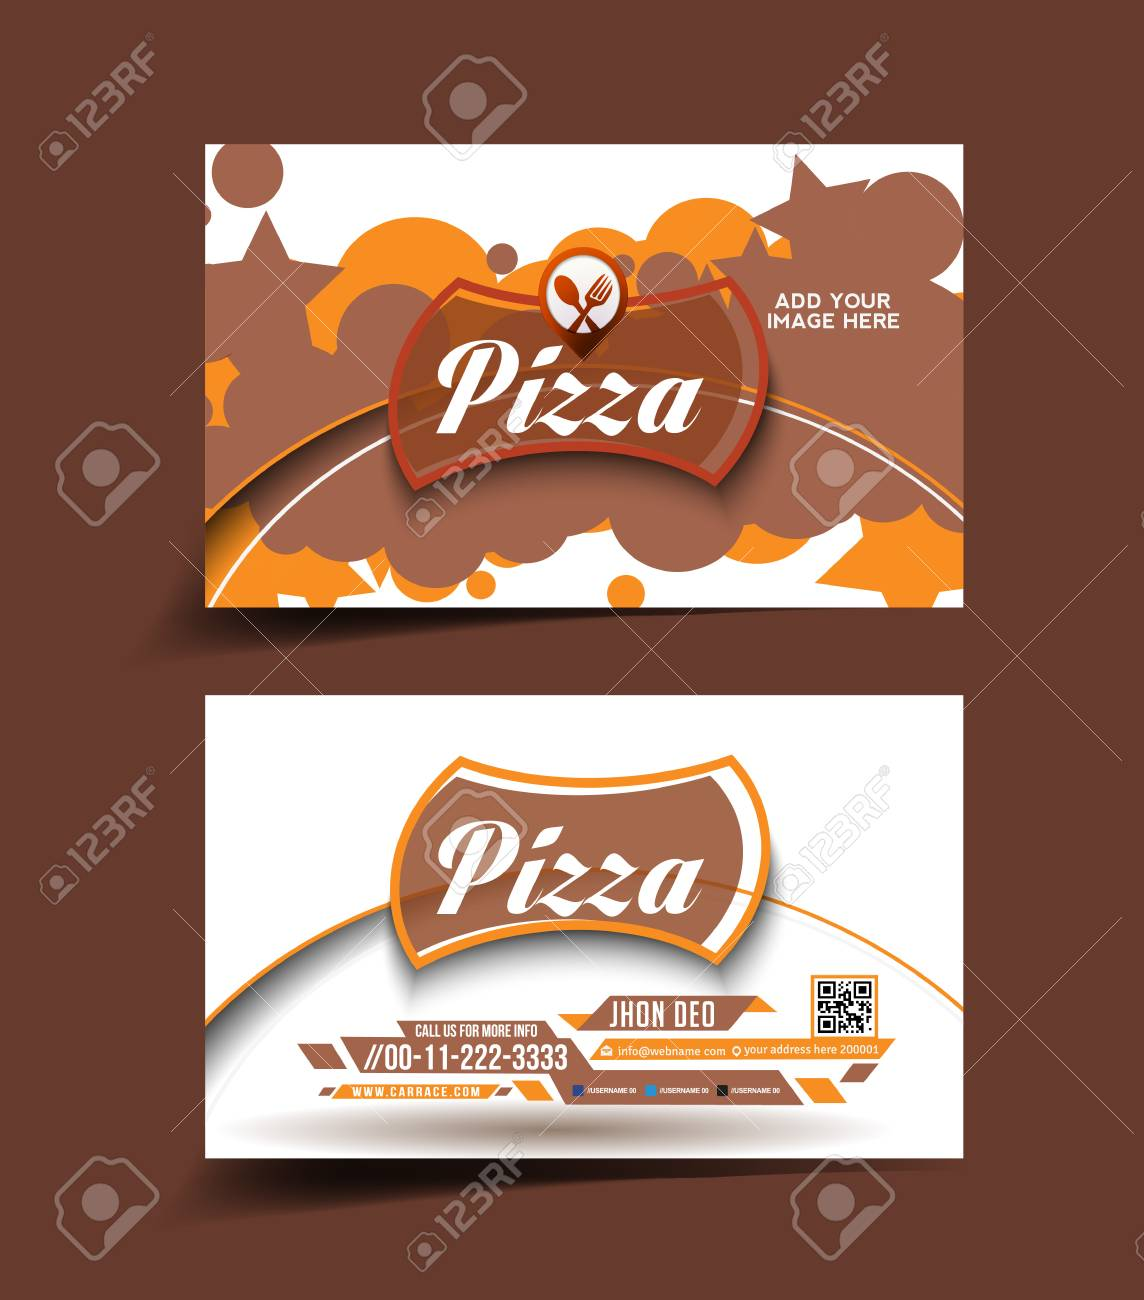 Pizza store business card set royalty free cliparts vectors and pizza store business card set stock vector 27142112 colourmoves